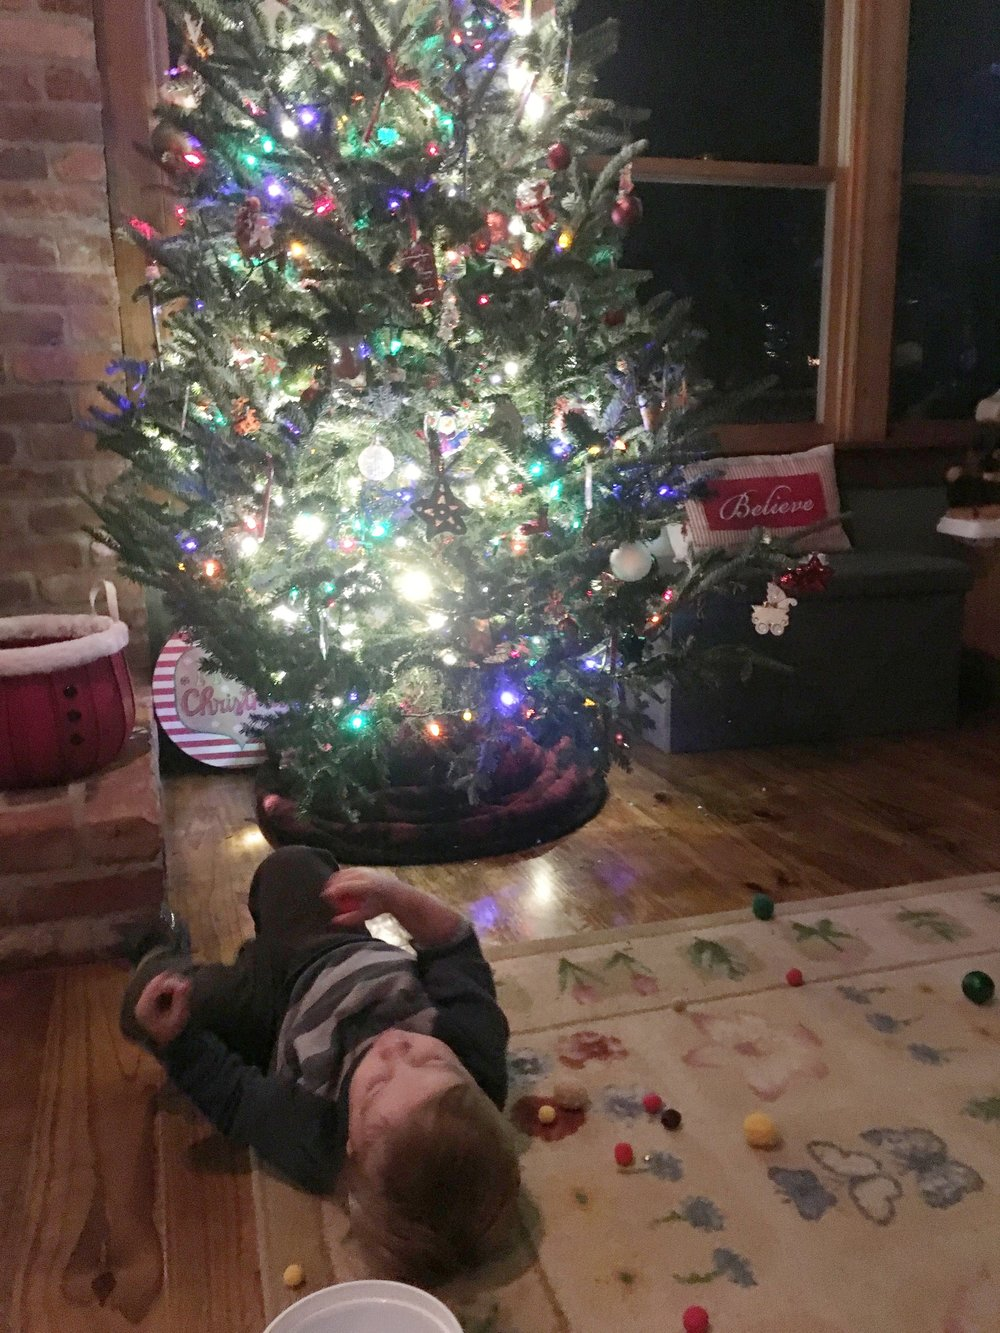 Jaxon considering his next move in dismantling our tree